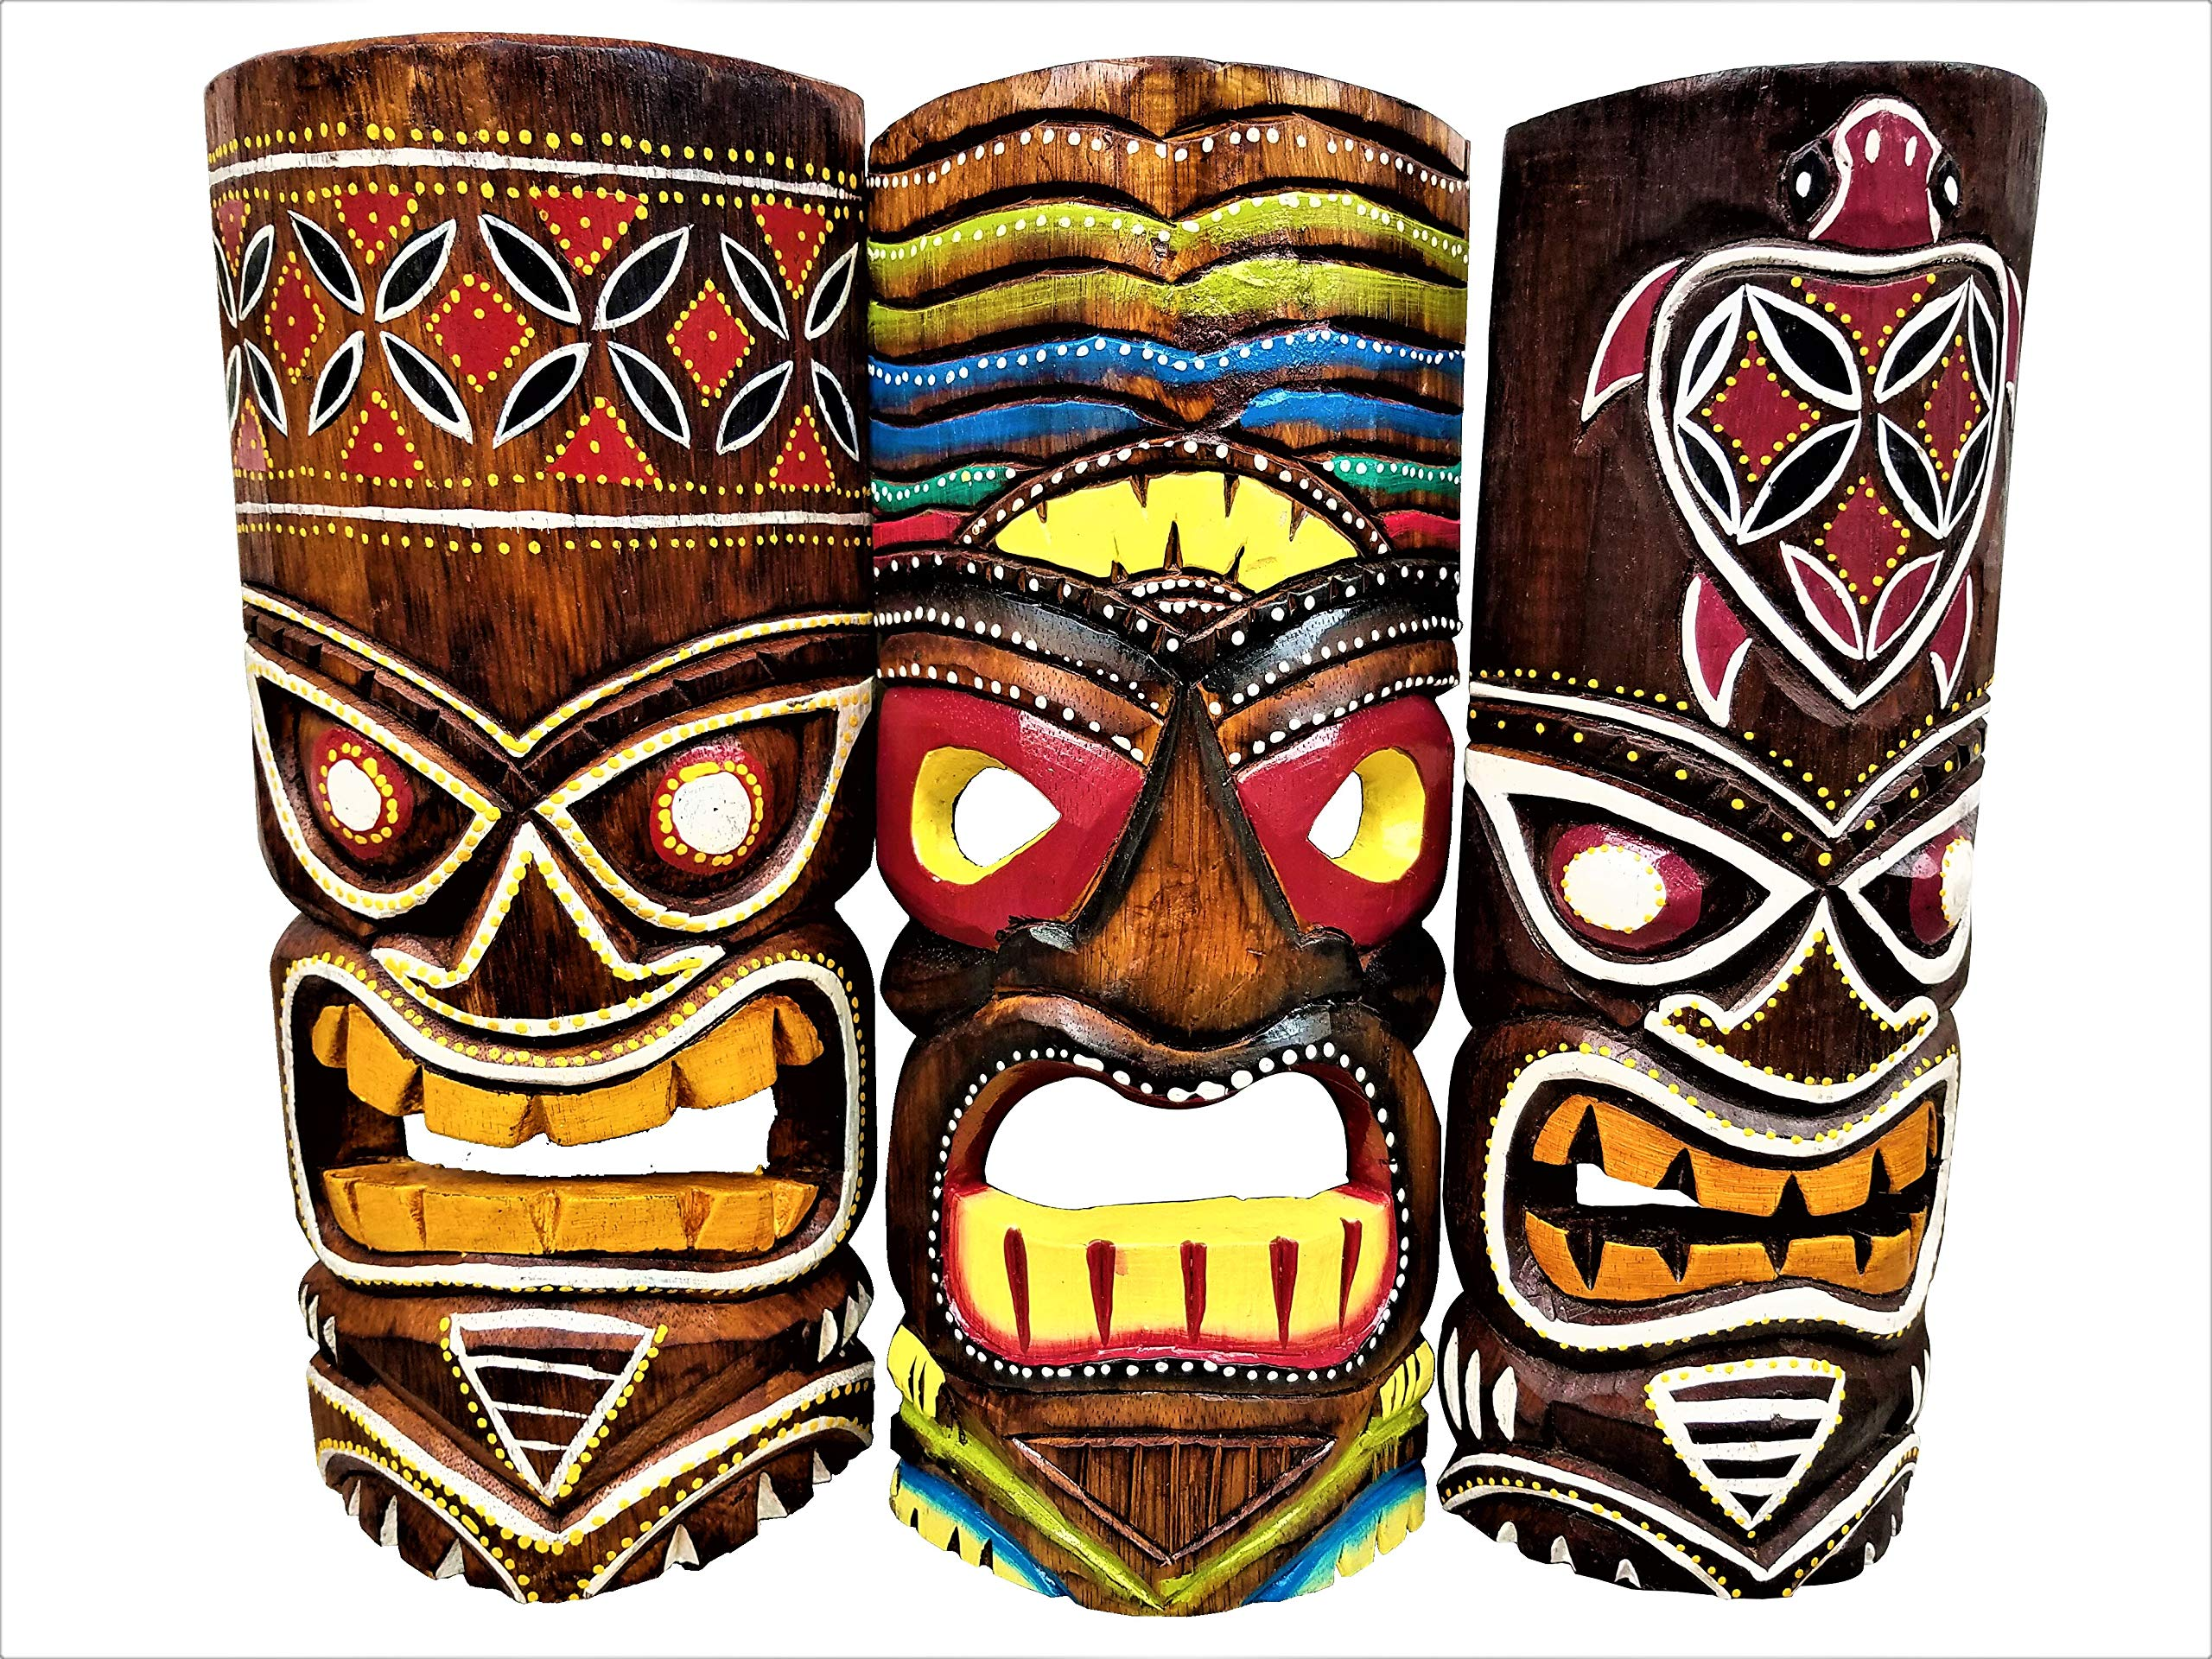 Set of (3) Wooden Handcarved 12'' Tall Tiki Masks Tropical Wall Decor! by All Seas Imports